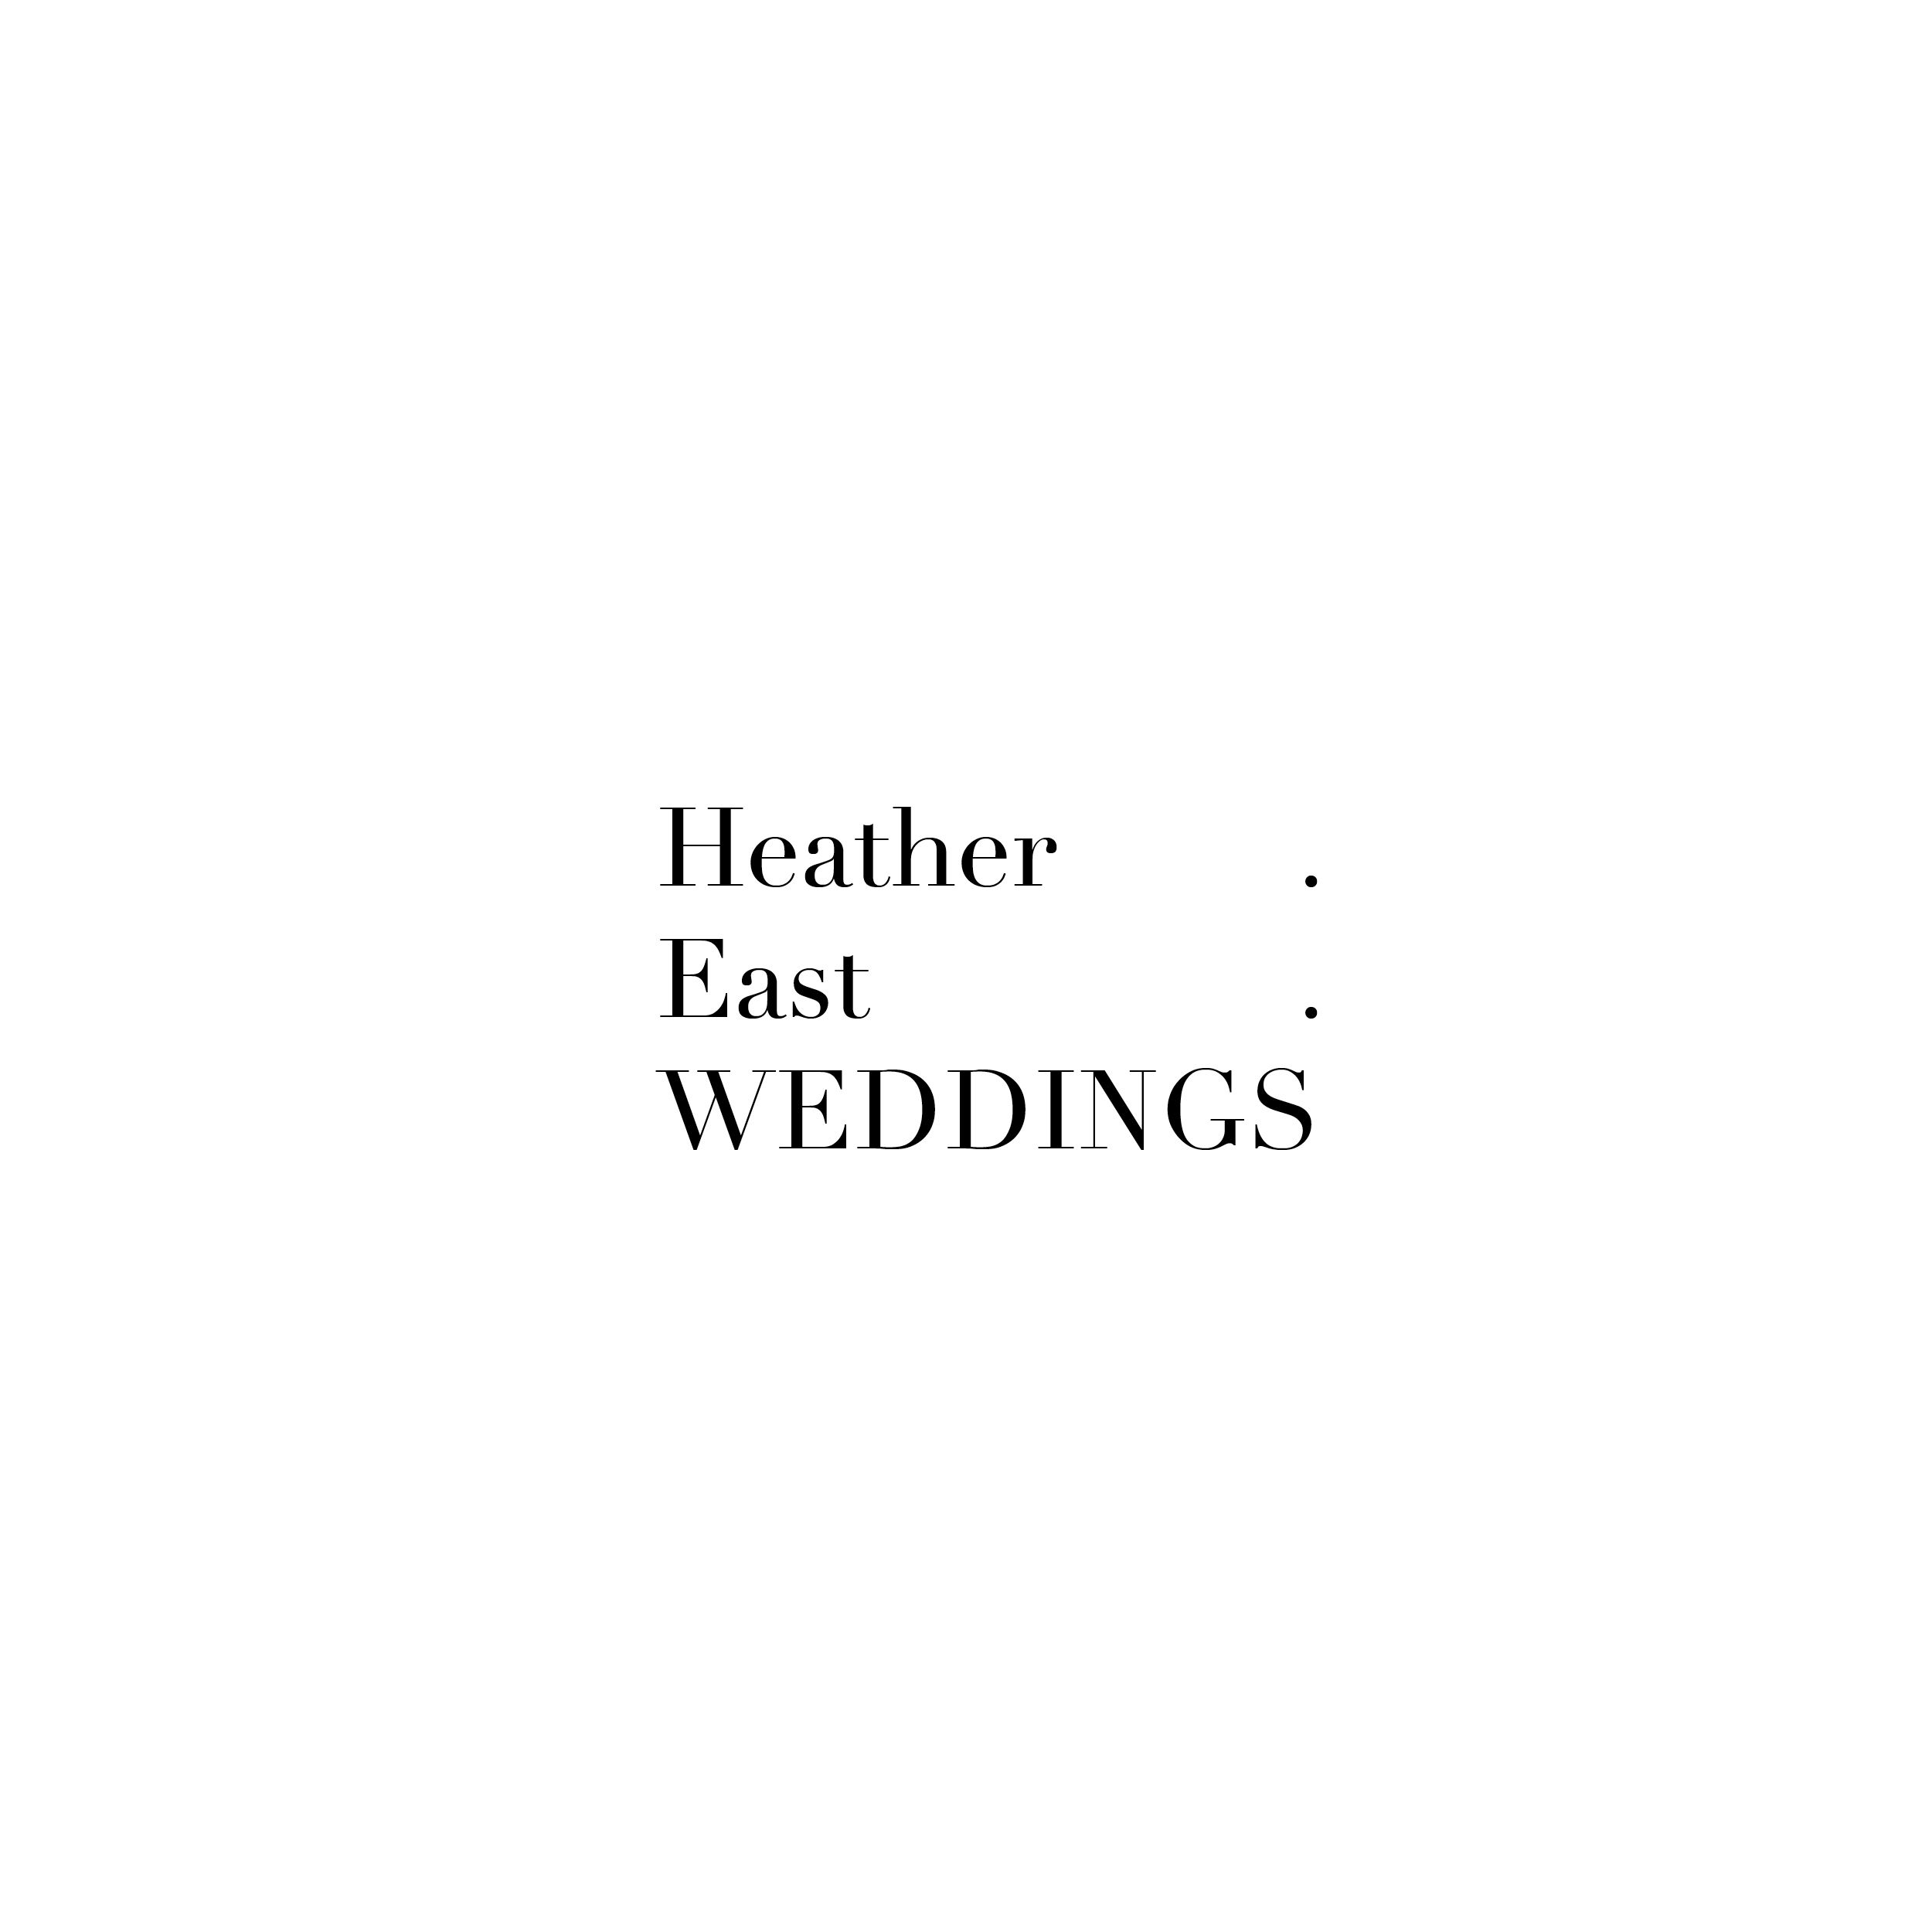 Heather East Weddings